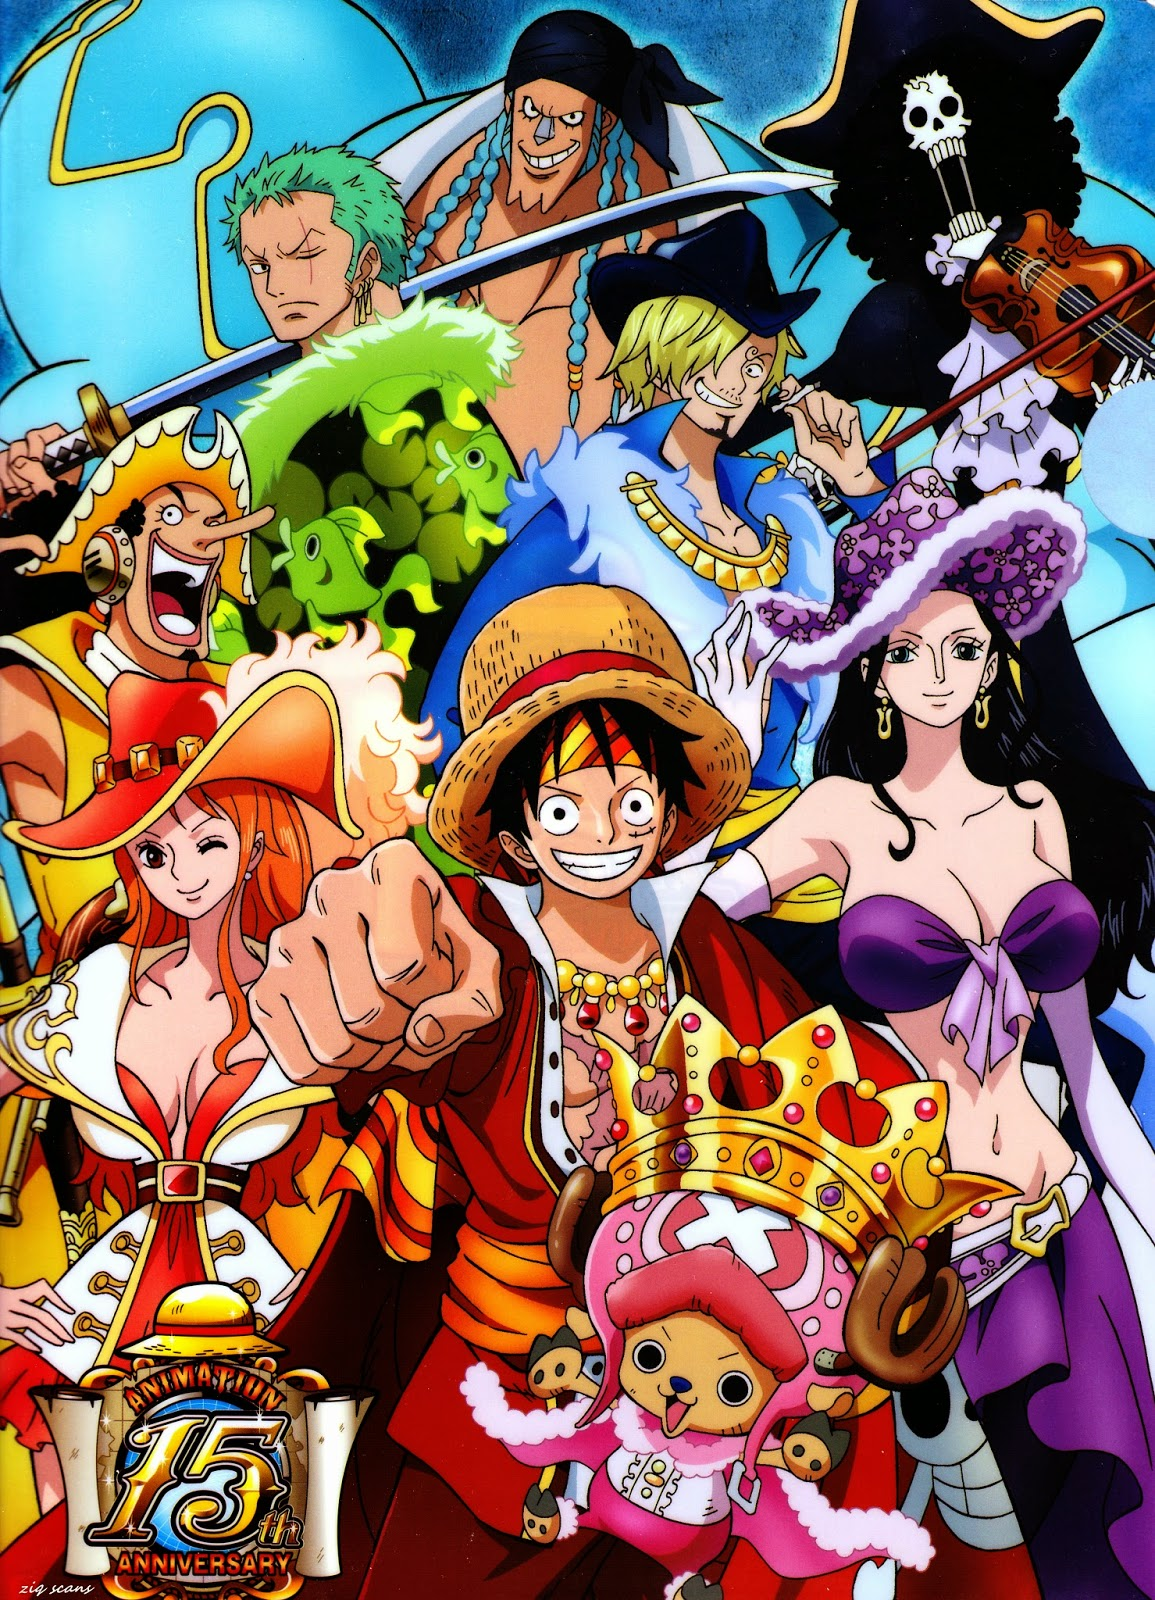 imagenes-de-one-piece-3.jpg